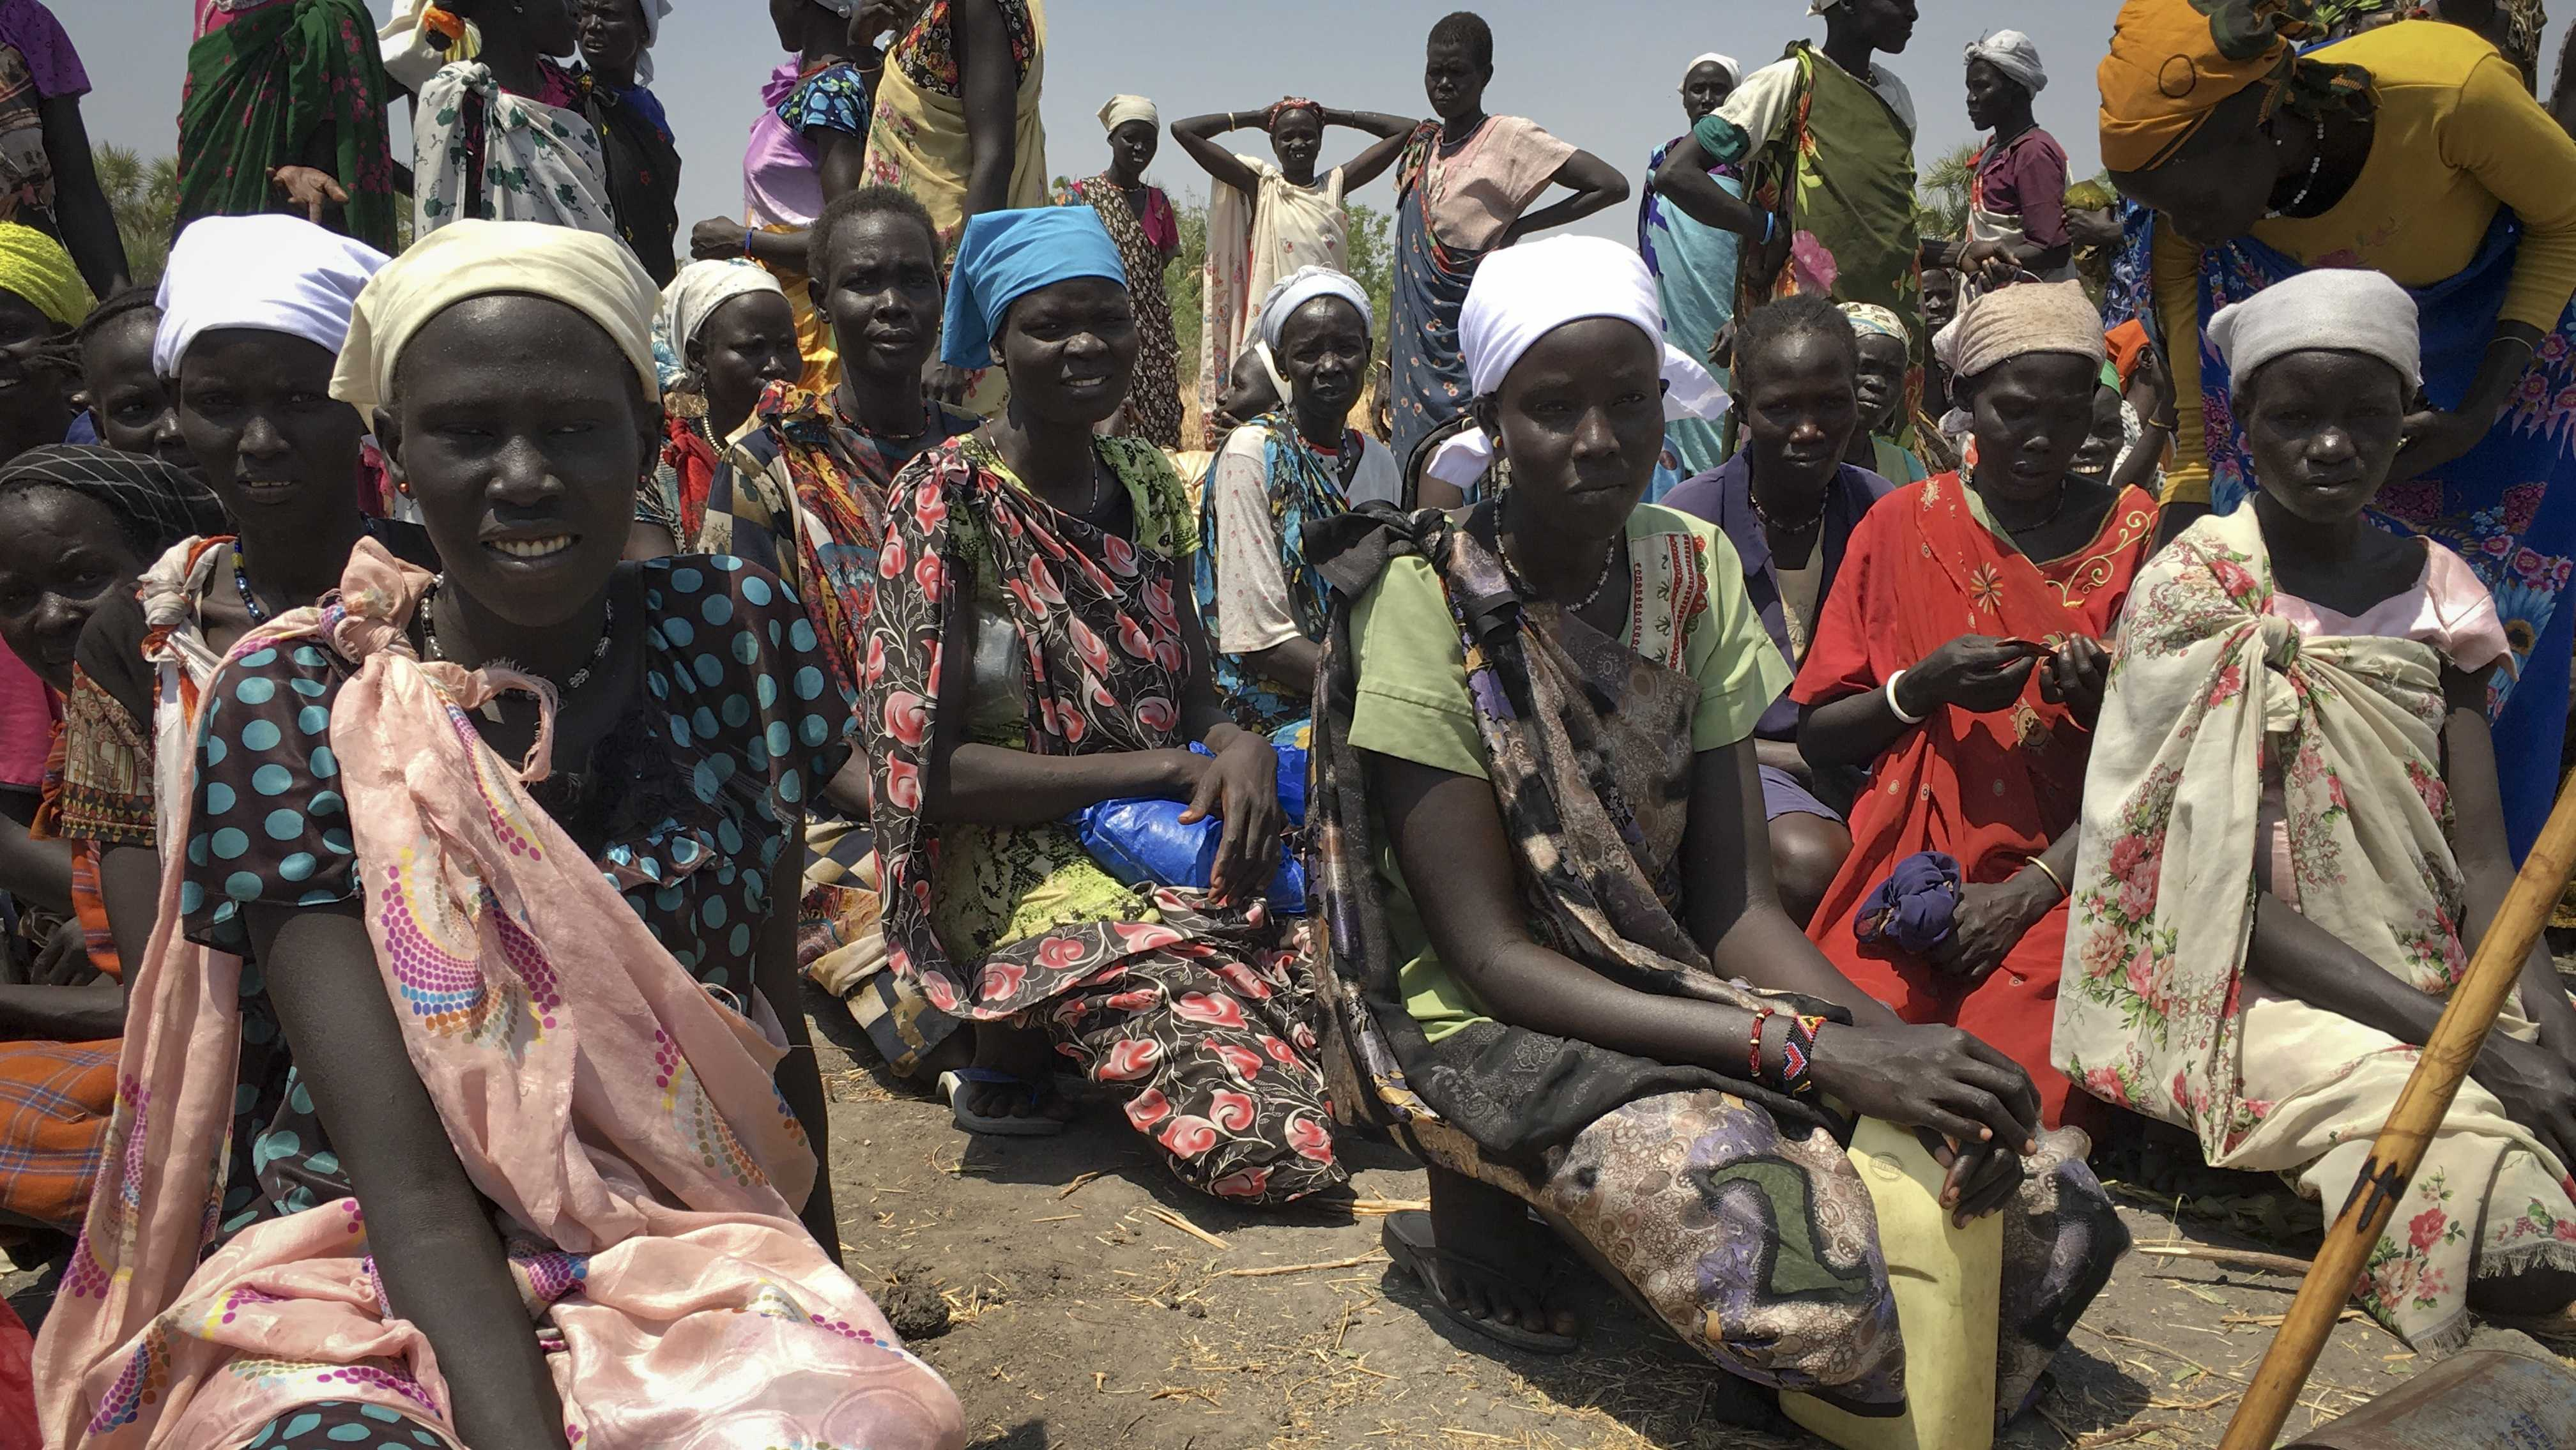 In this photo taken Wednesday, March 1, 2017, women sit in line on the ground waiting to receive food distributed by the World Food Program (WFP) in Padeah, South Sudan. South Sudanese who fled famine and fighting in Leer county emerged from South Sudan's swamps after months in hiding to receive food aid being distributed by the World Food Program.